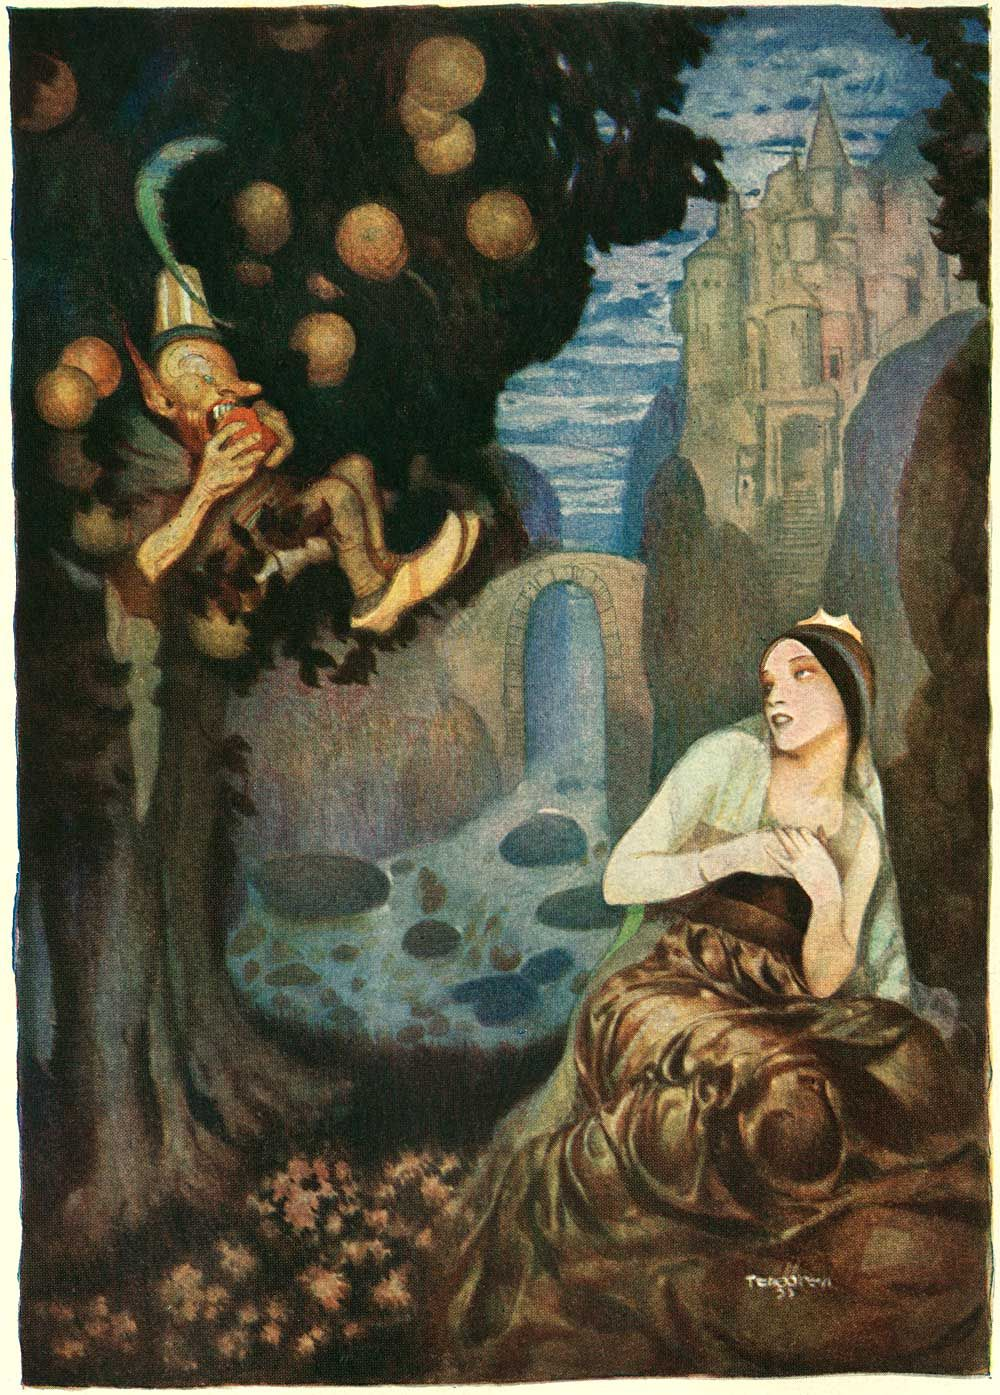 Aulnoy Fairy Tales Illustrated Gustaf Tenggren